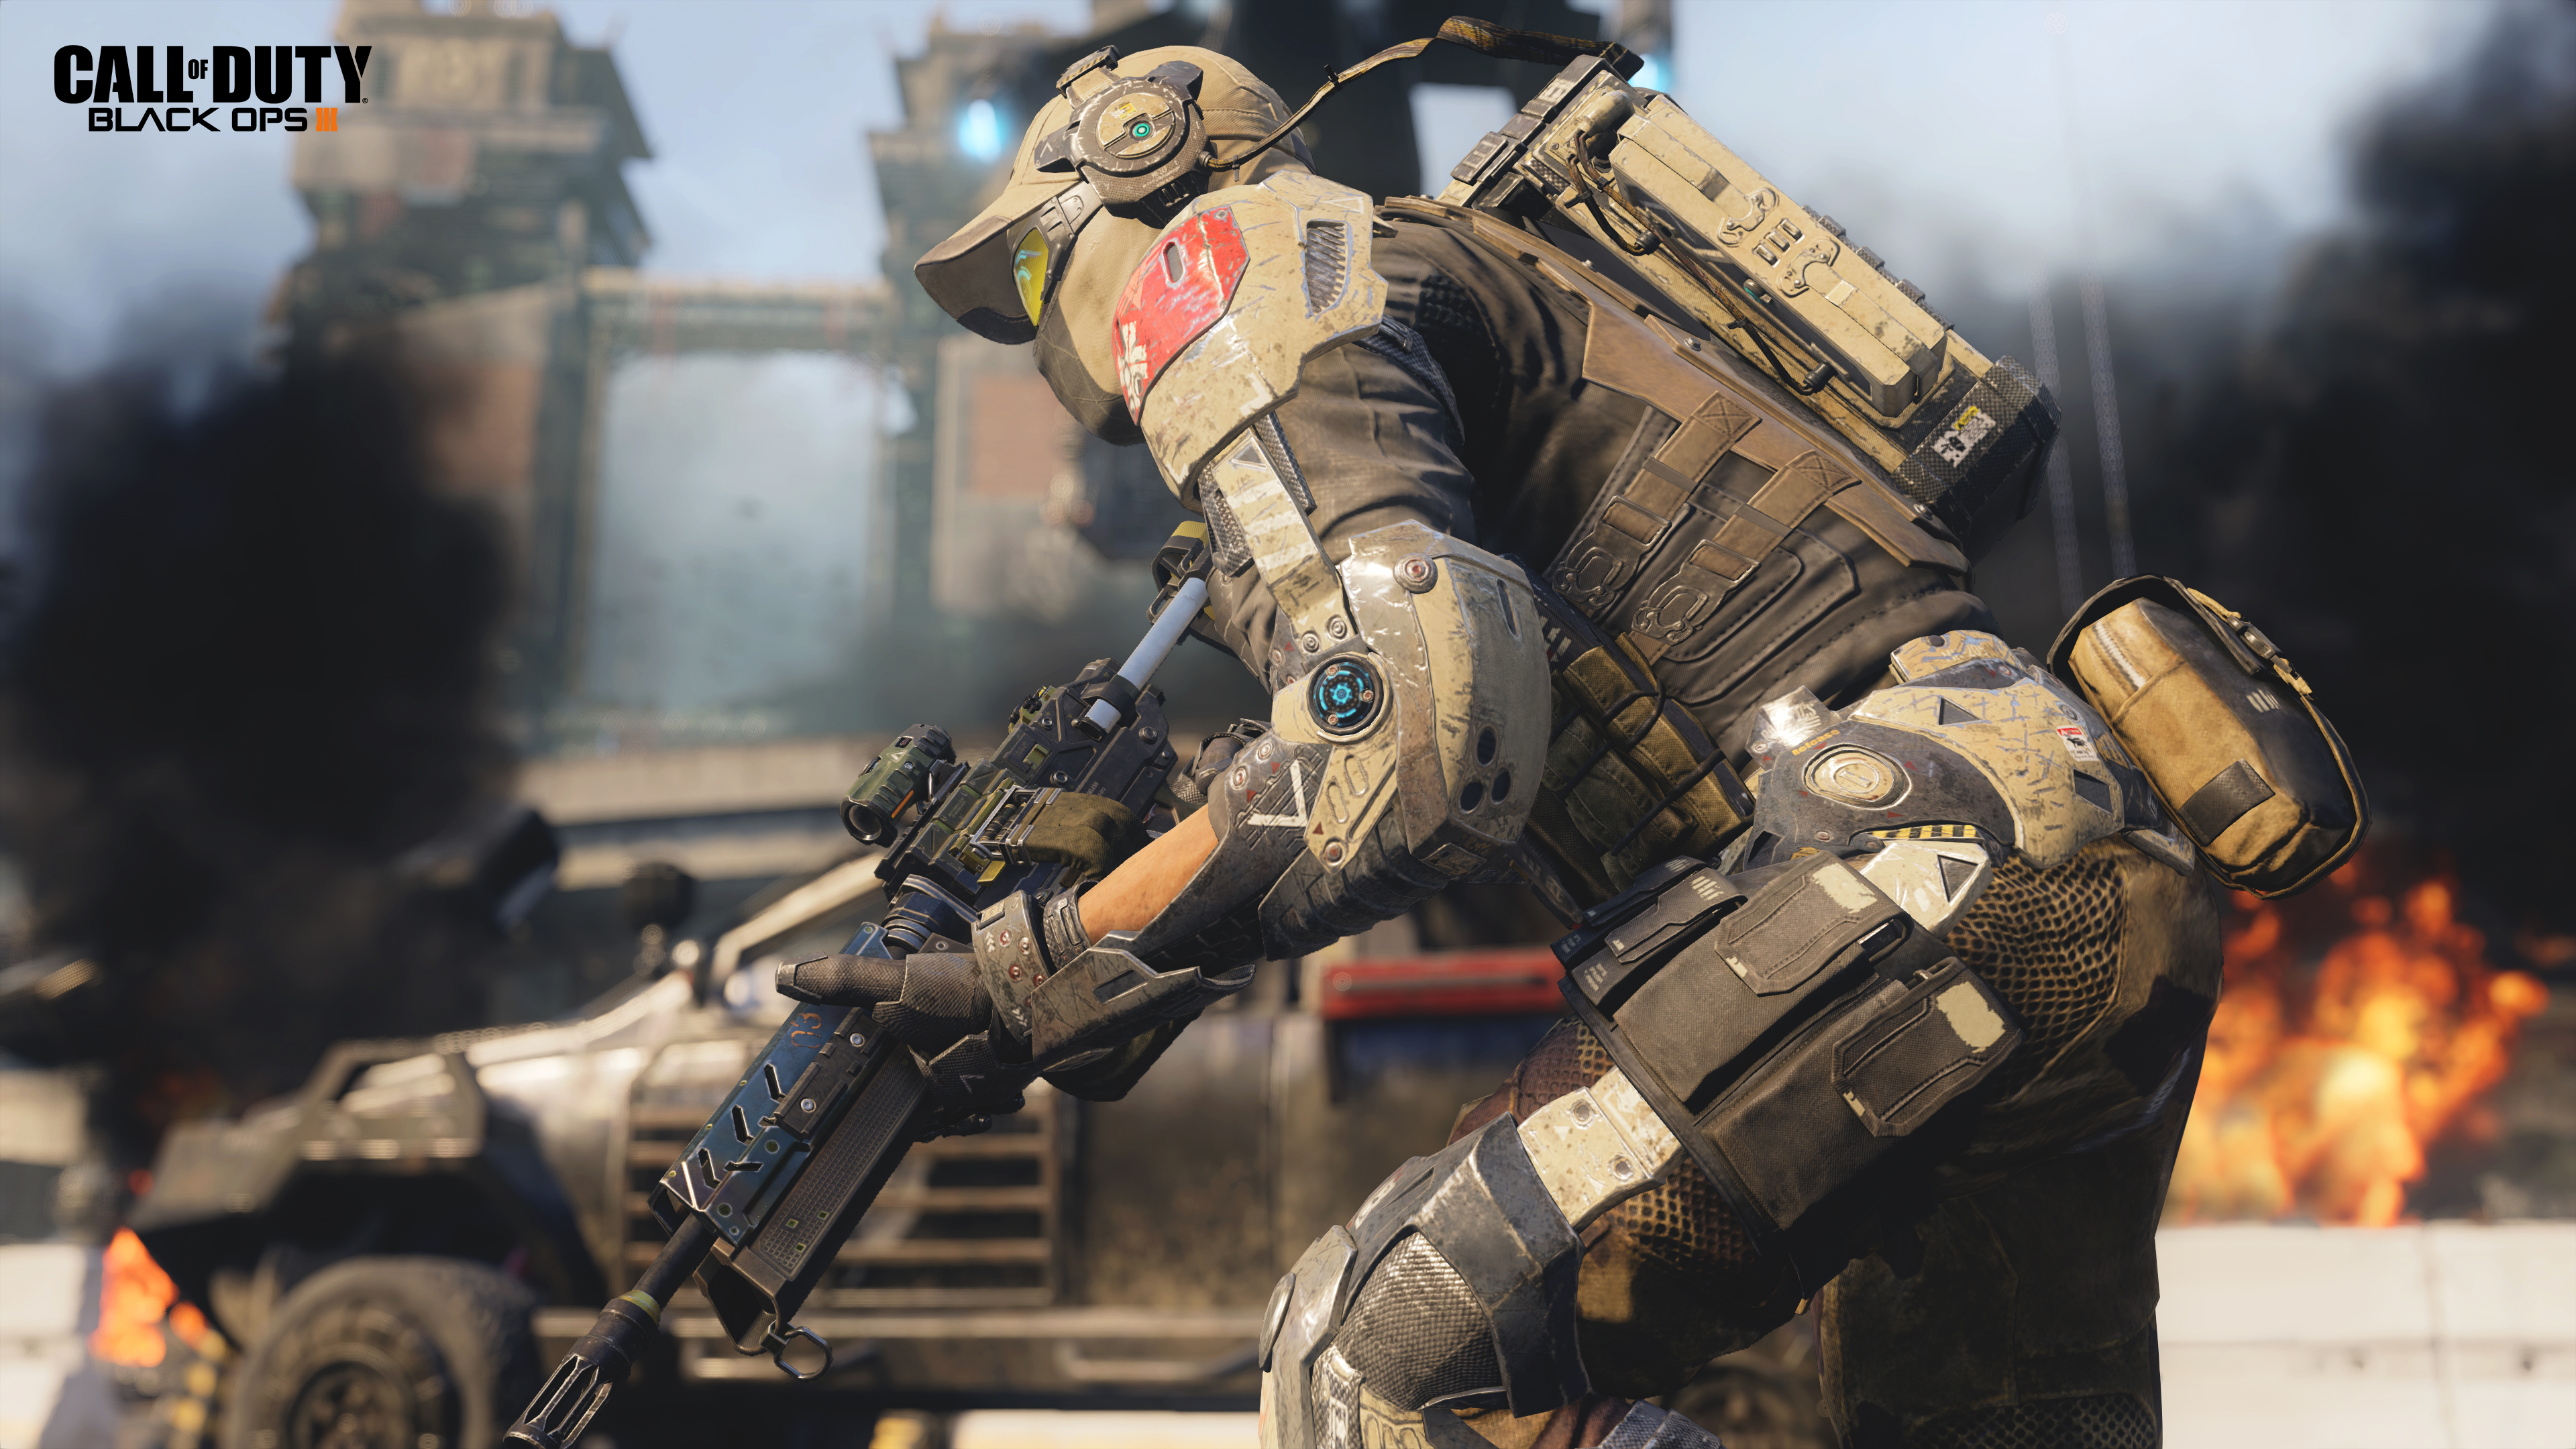 Call Of Duty Black Ops 3 Won T Be Held Back On Pc Ps4 Xbox One By Last Gen Windows 10 Specific Features Not Announced